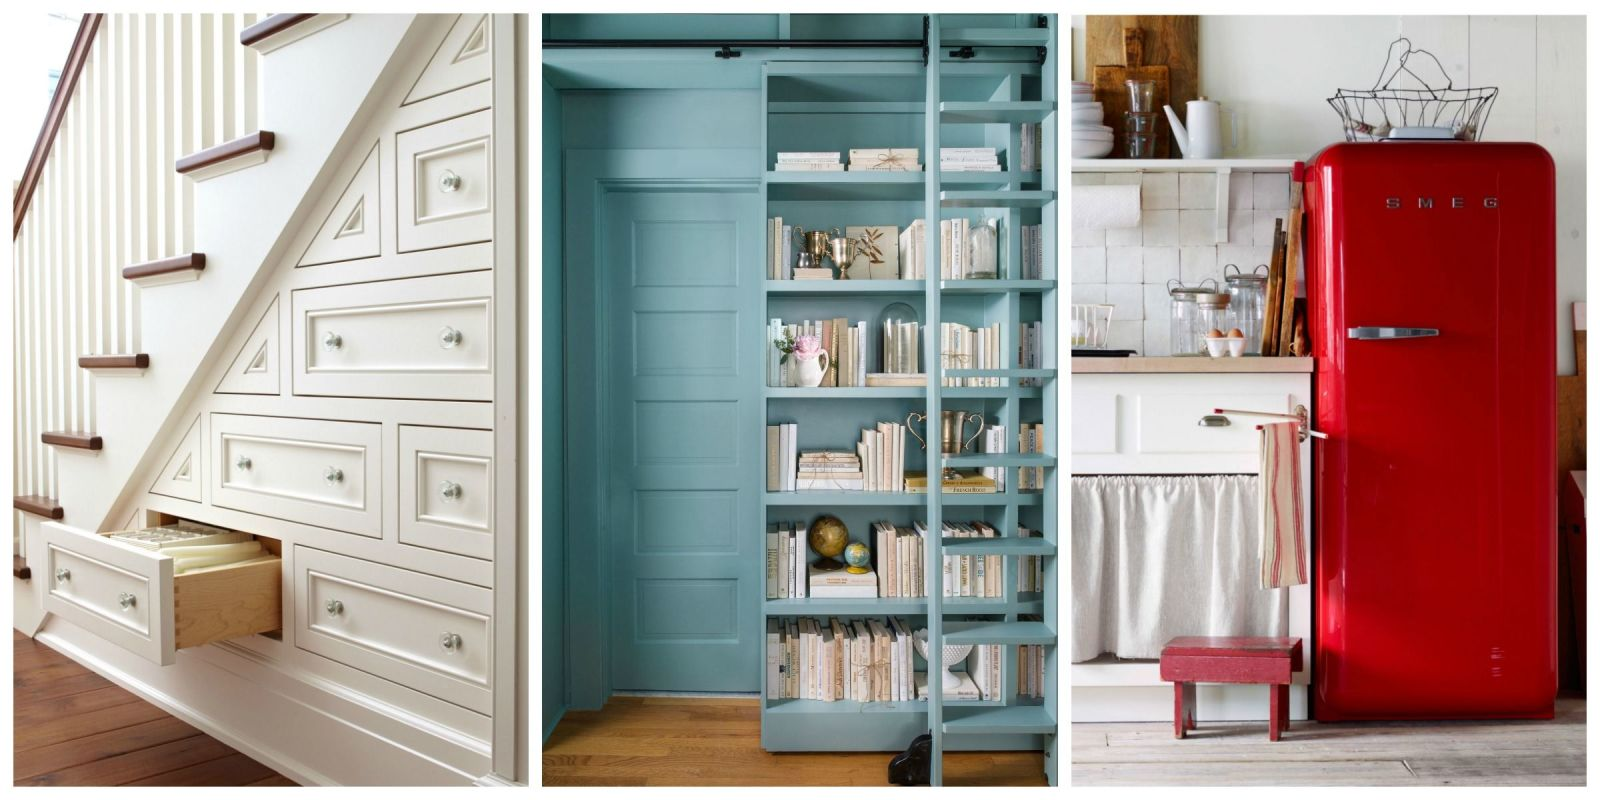 17 Small Space Decorating Ideas – Organization For Small Rooms